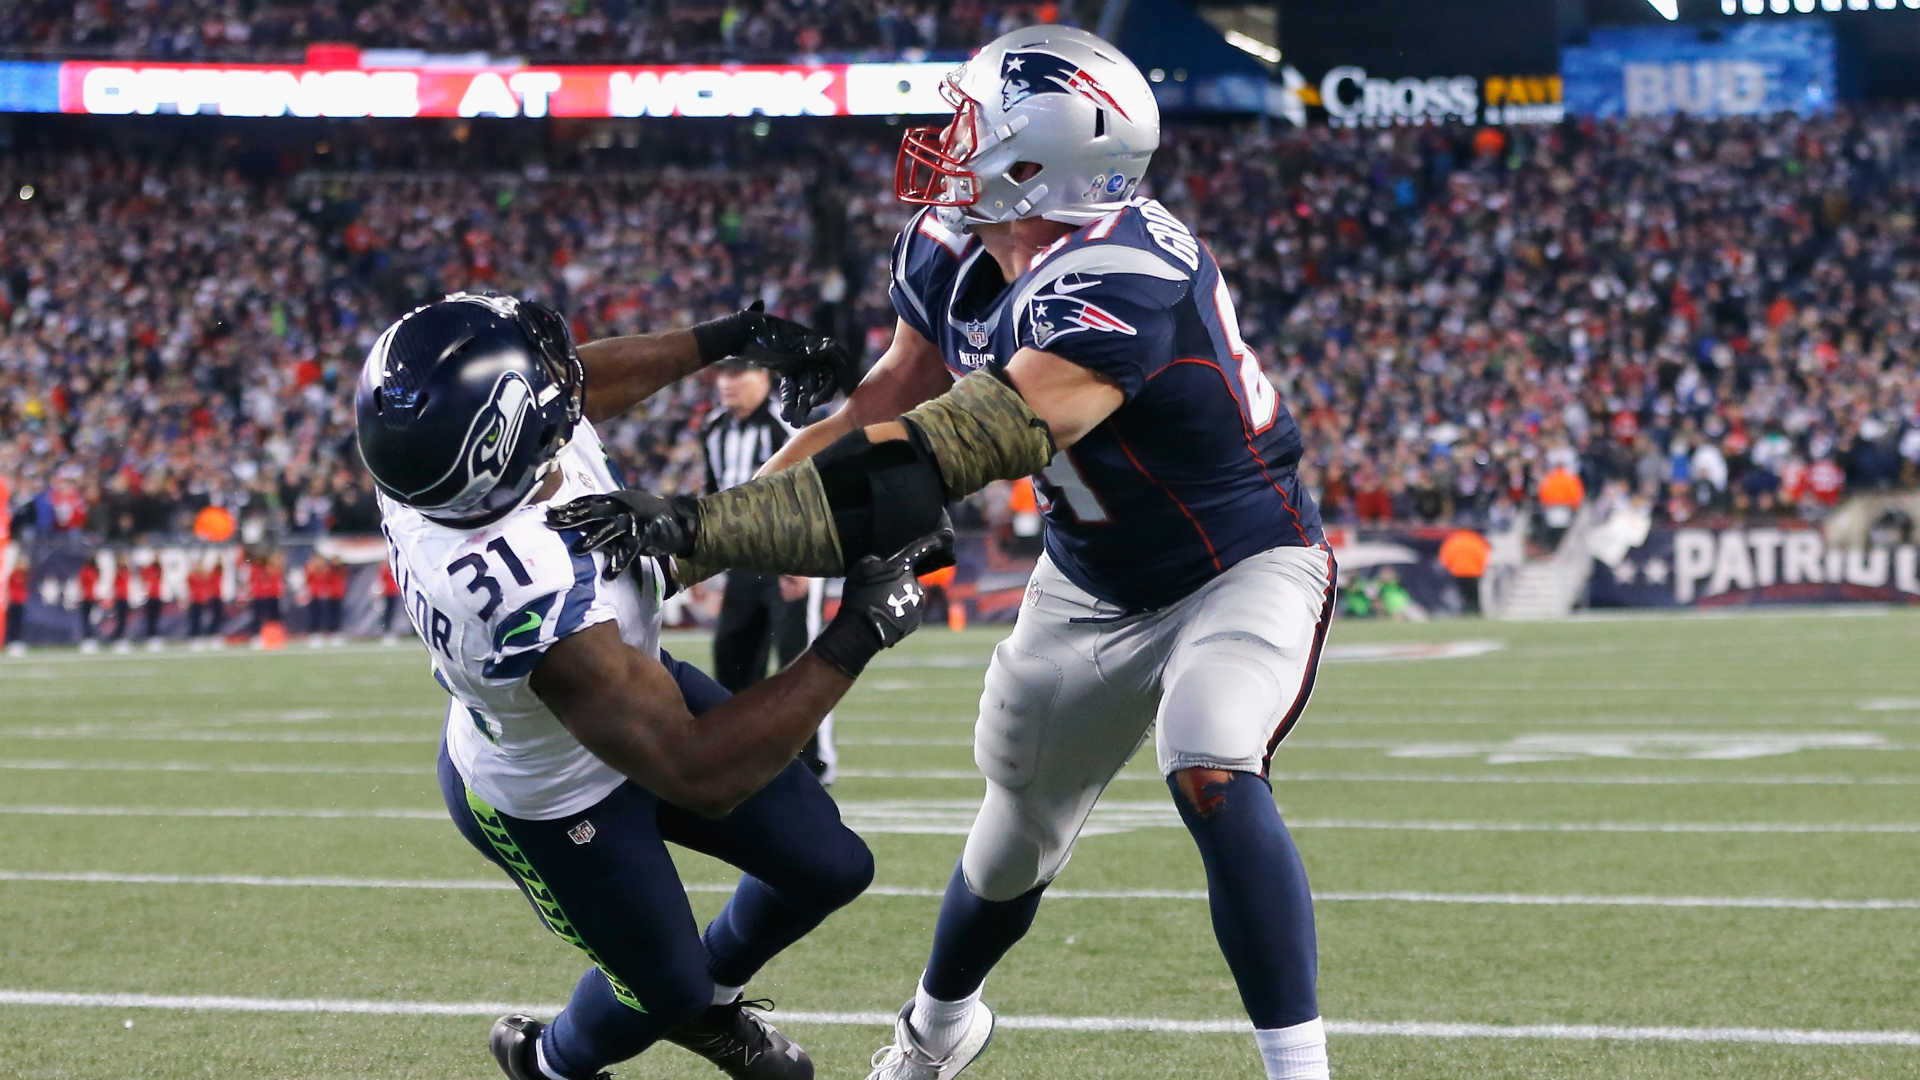 Rob Gronkowski has punctured lung